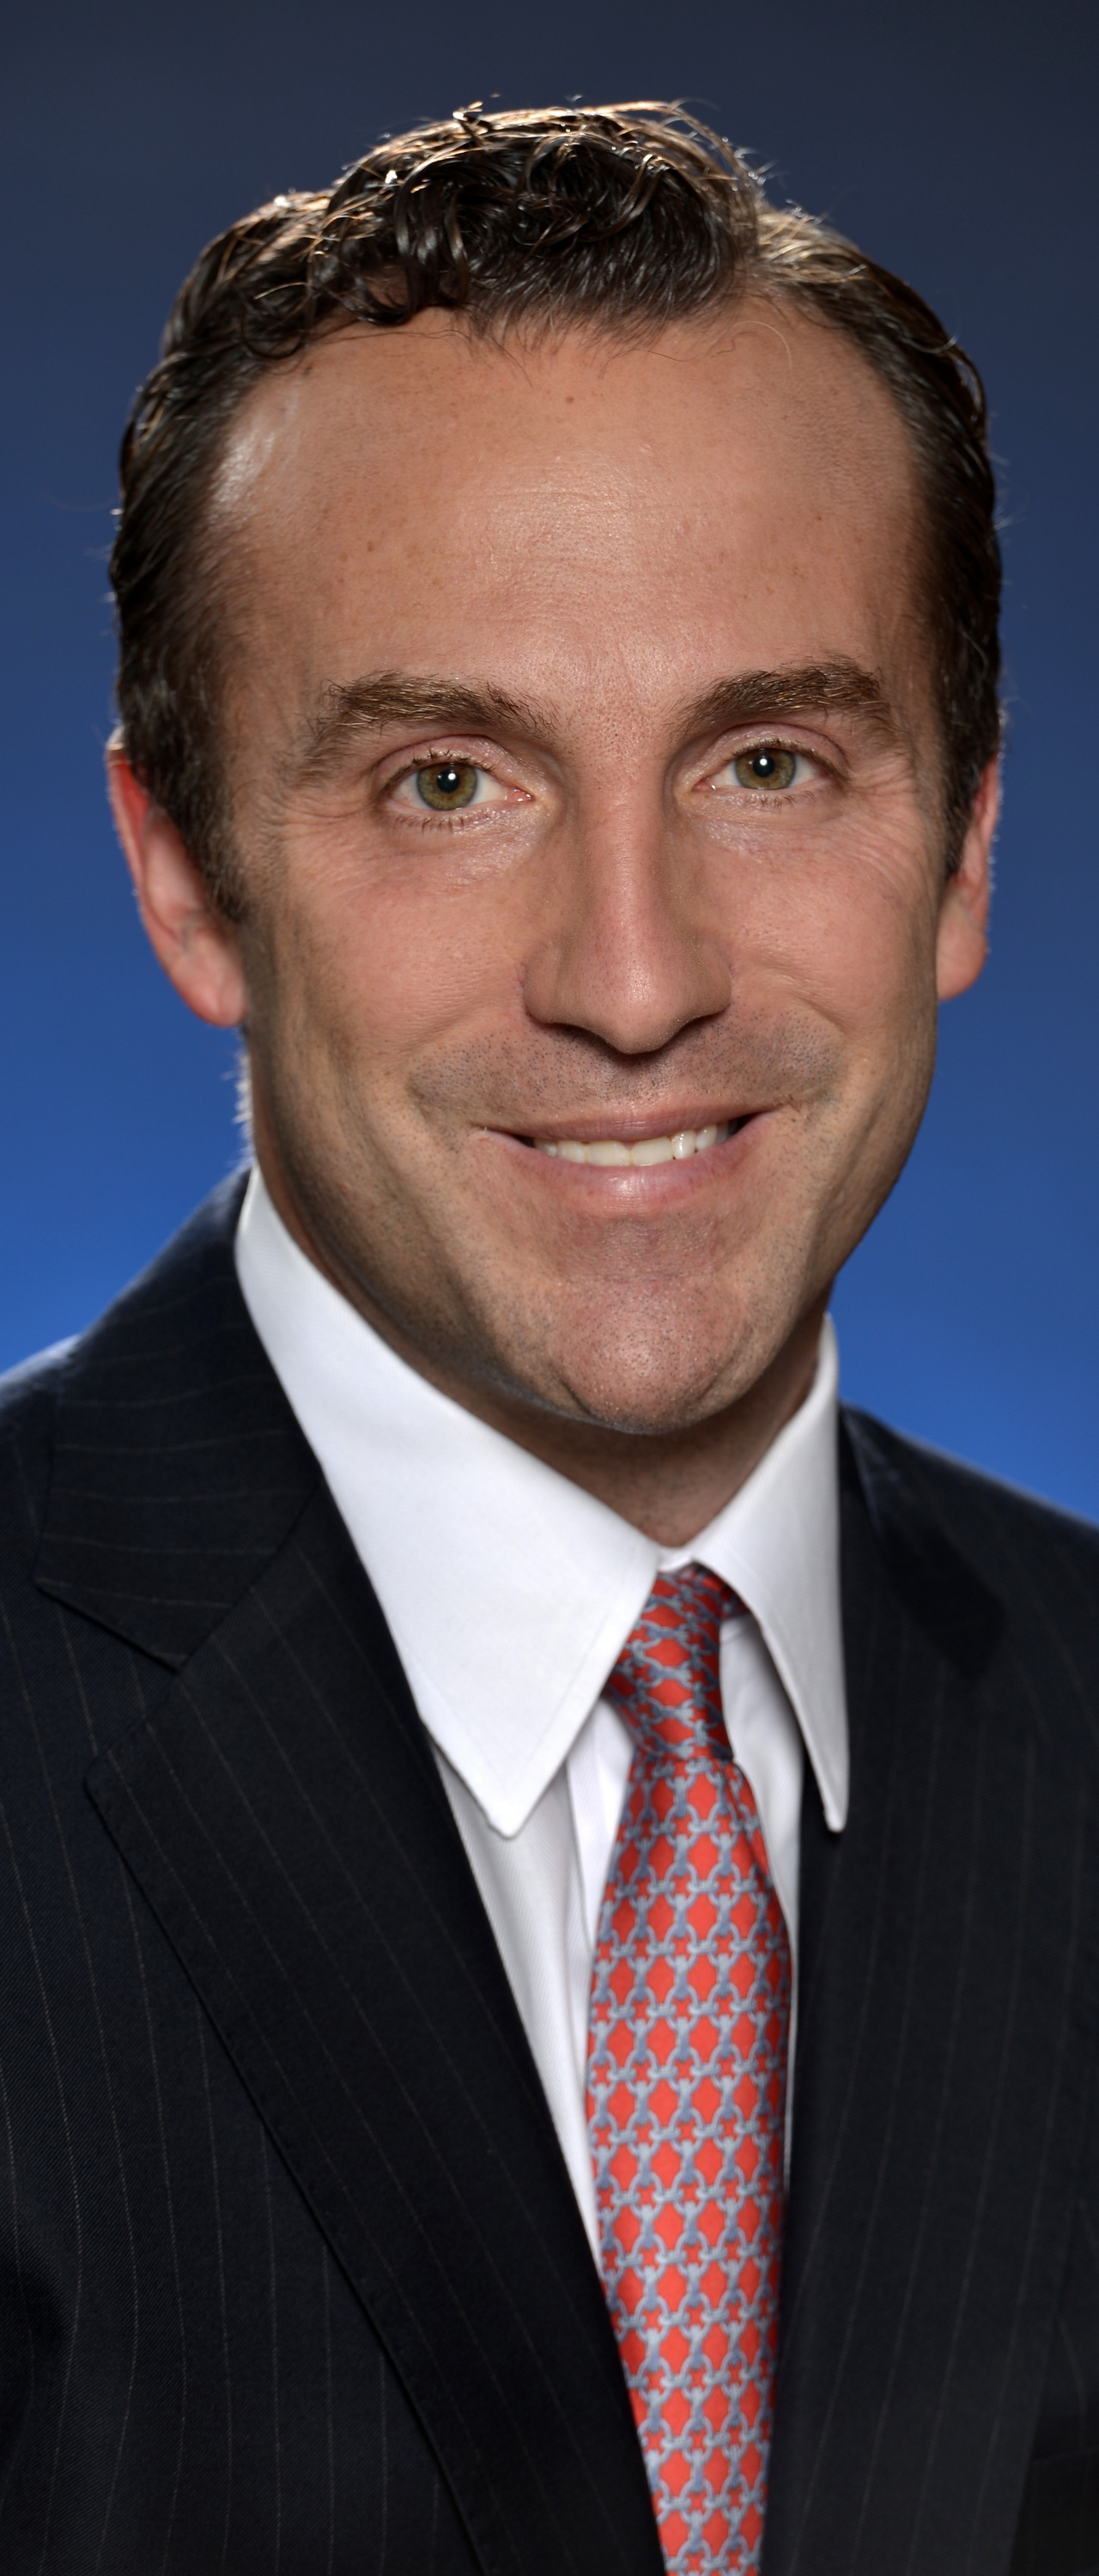 Reed Cordish, principal and partner, The Cordish Cos.